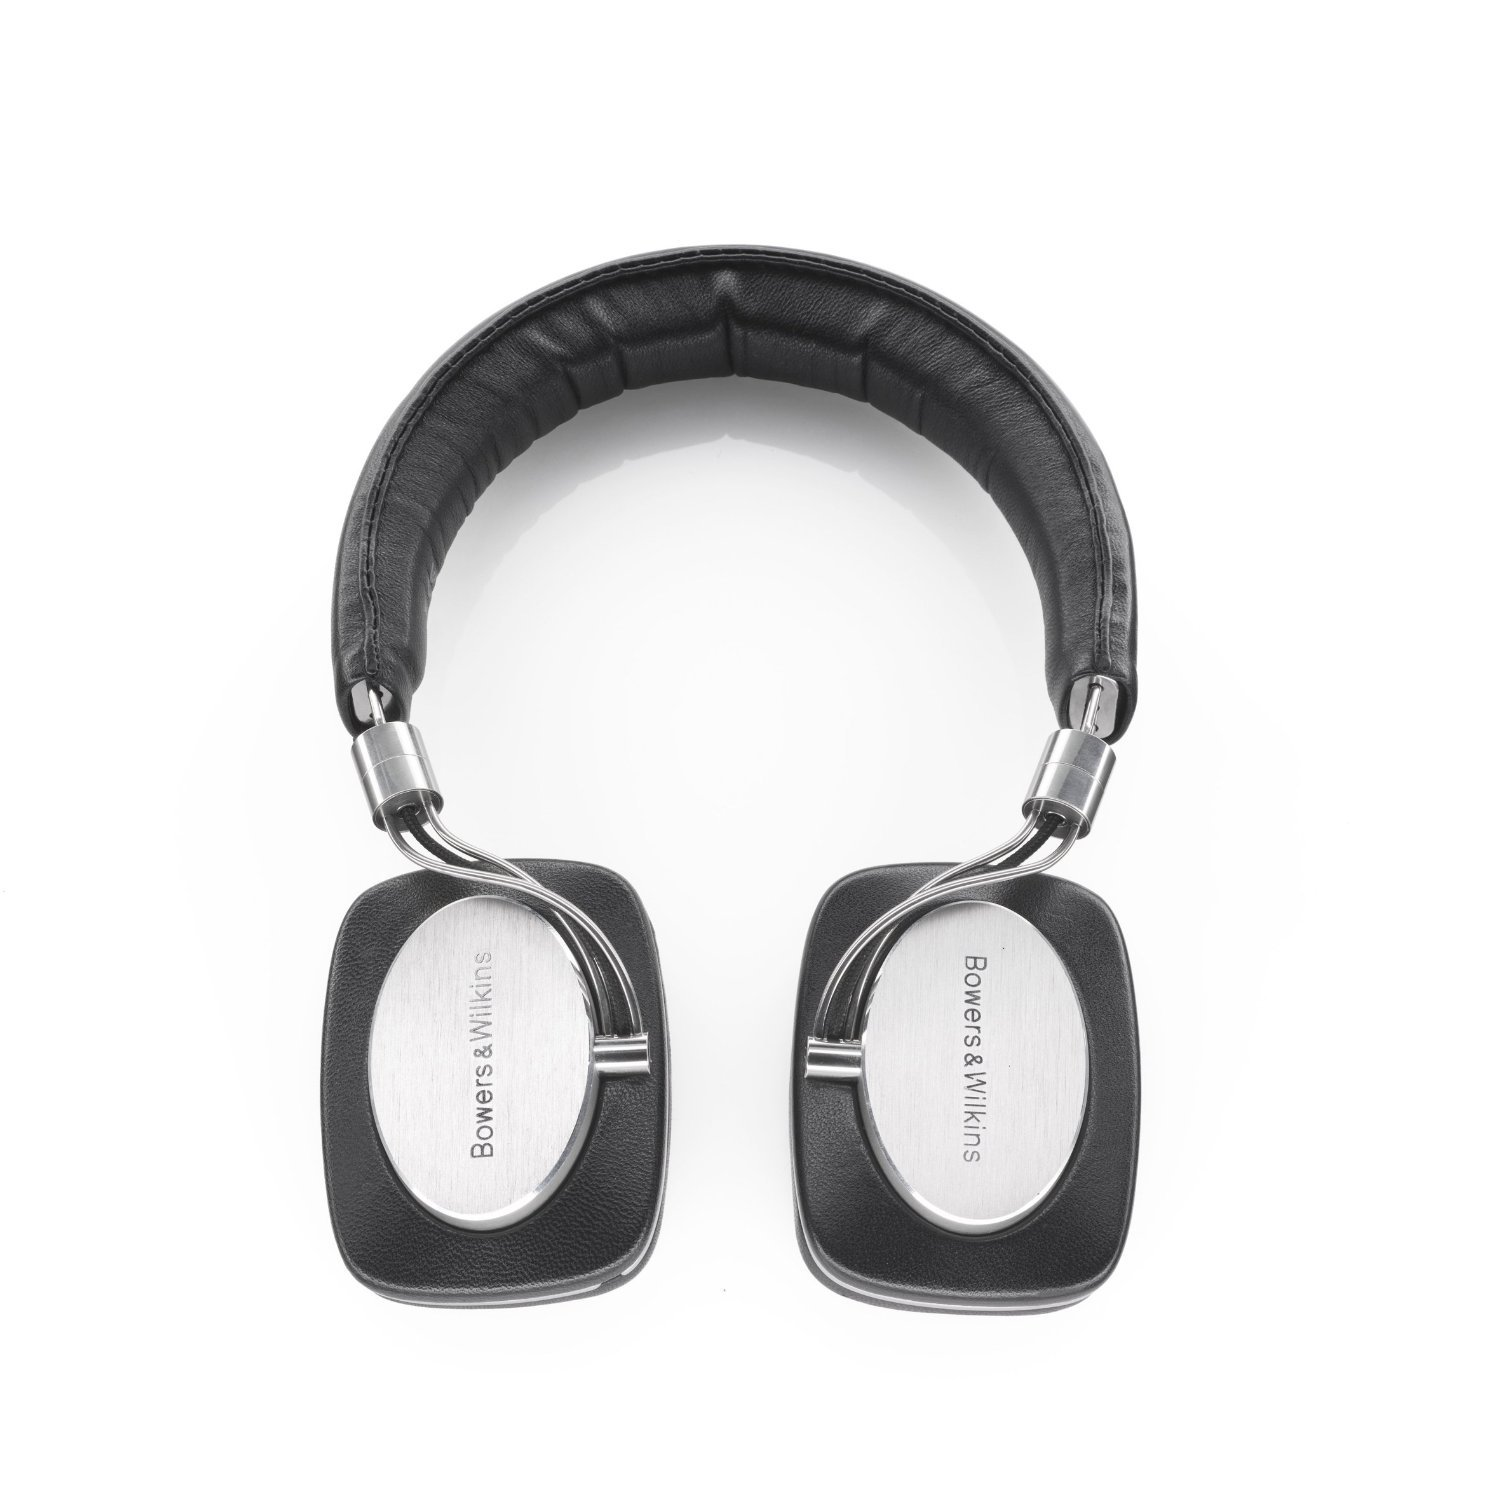 bowers and wilkins c5 series 2. amazon.com: bowers \u0026 wilkins p5 headphones - black (wired): home audio theater and c5 series 2